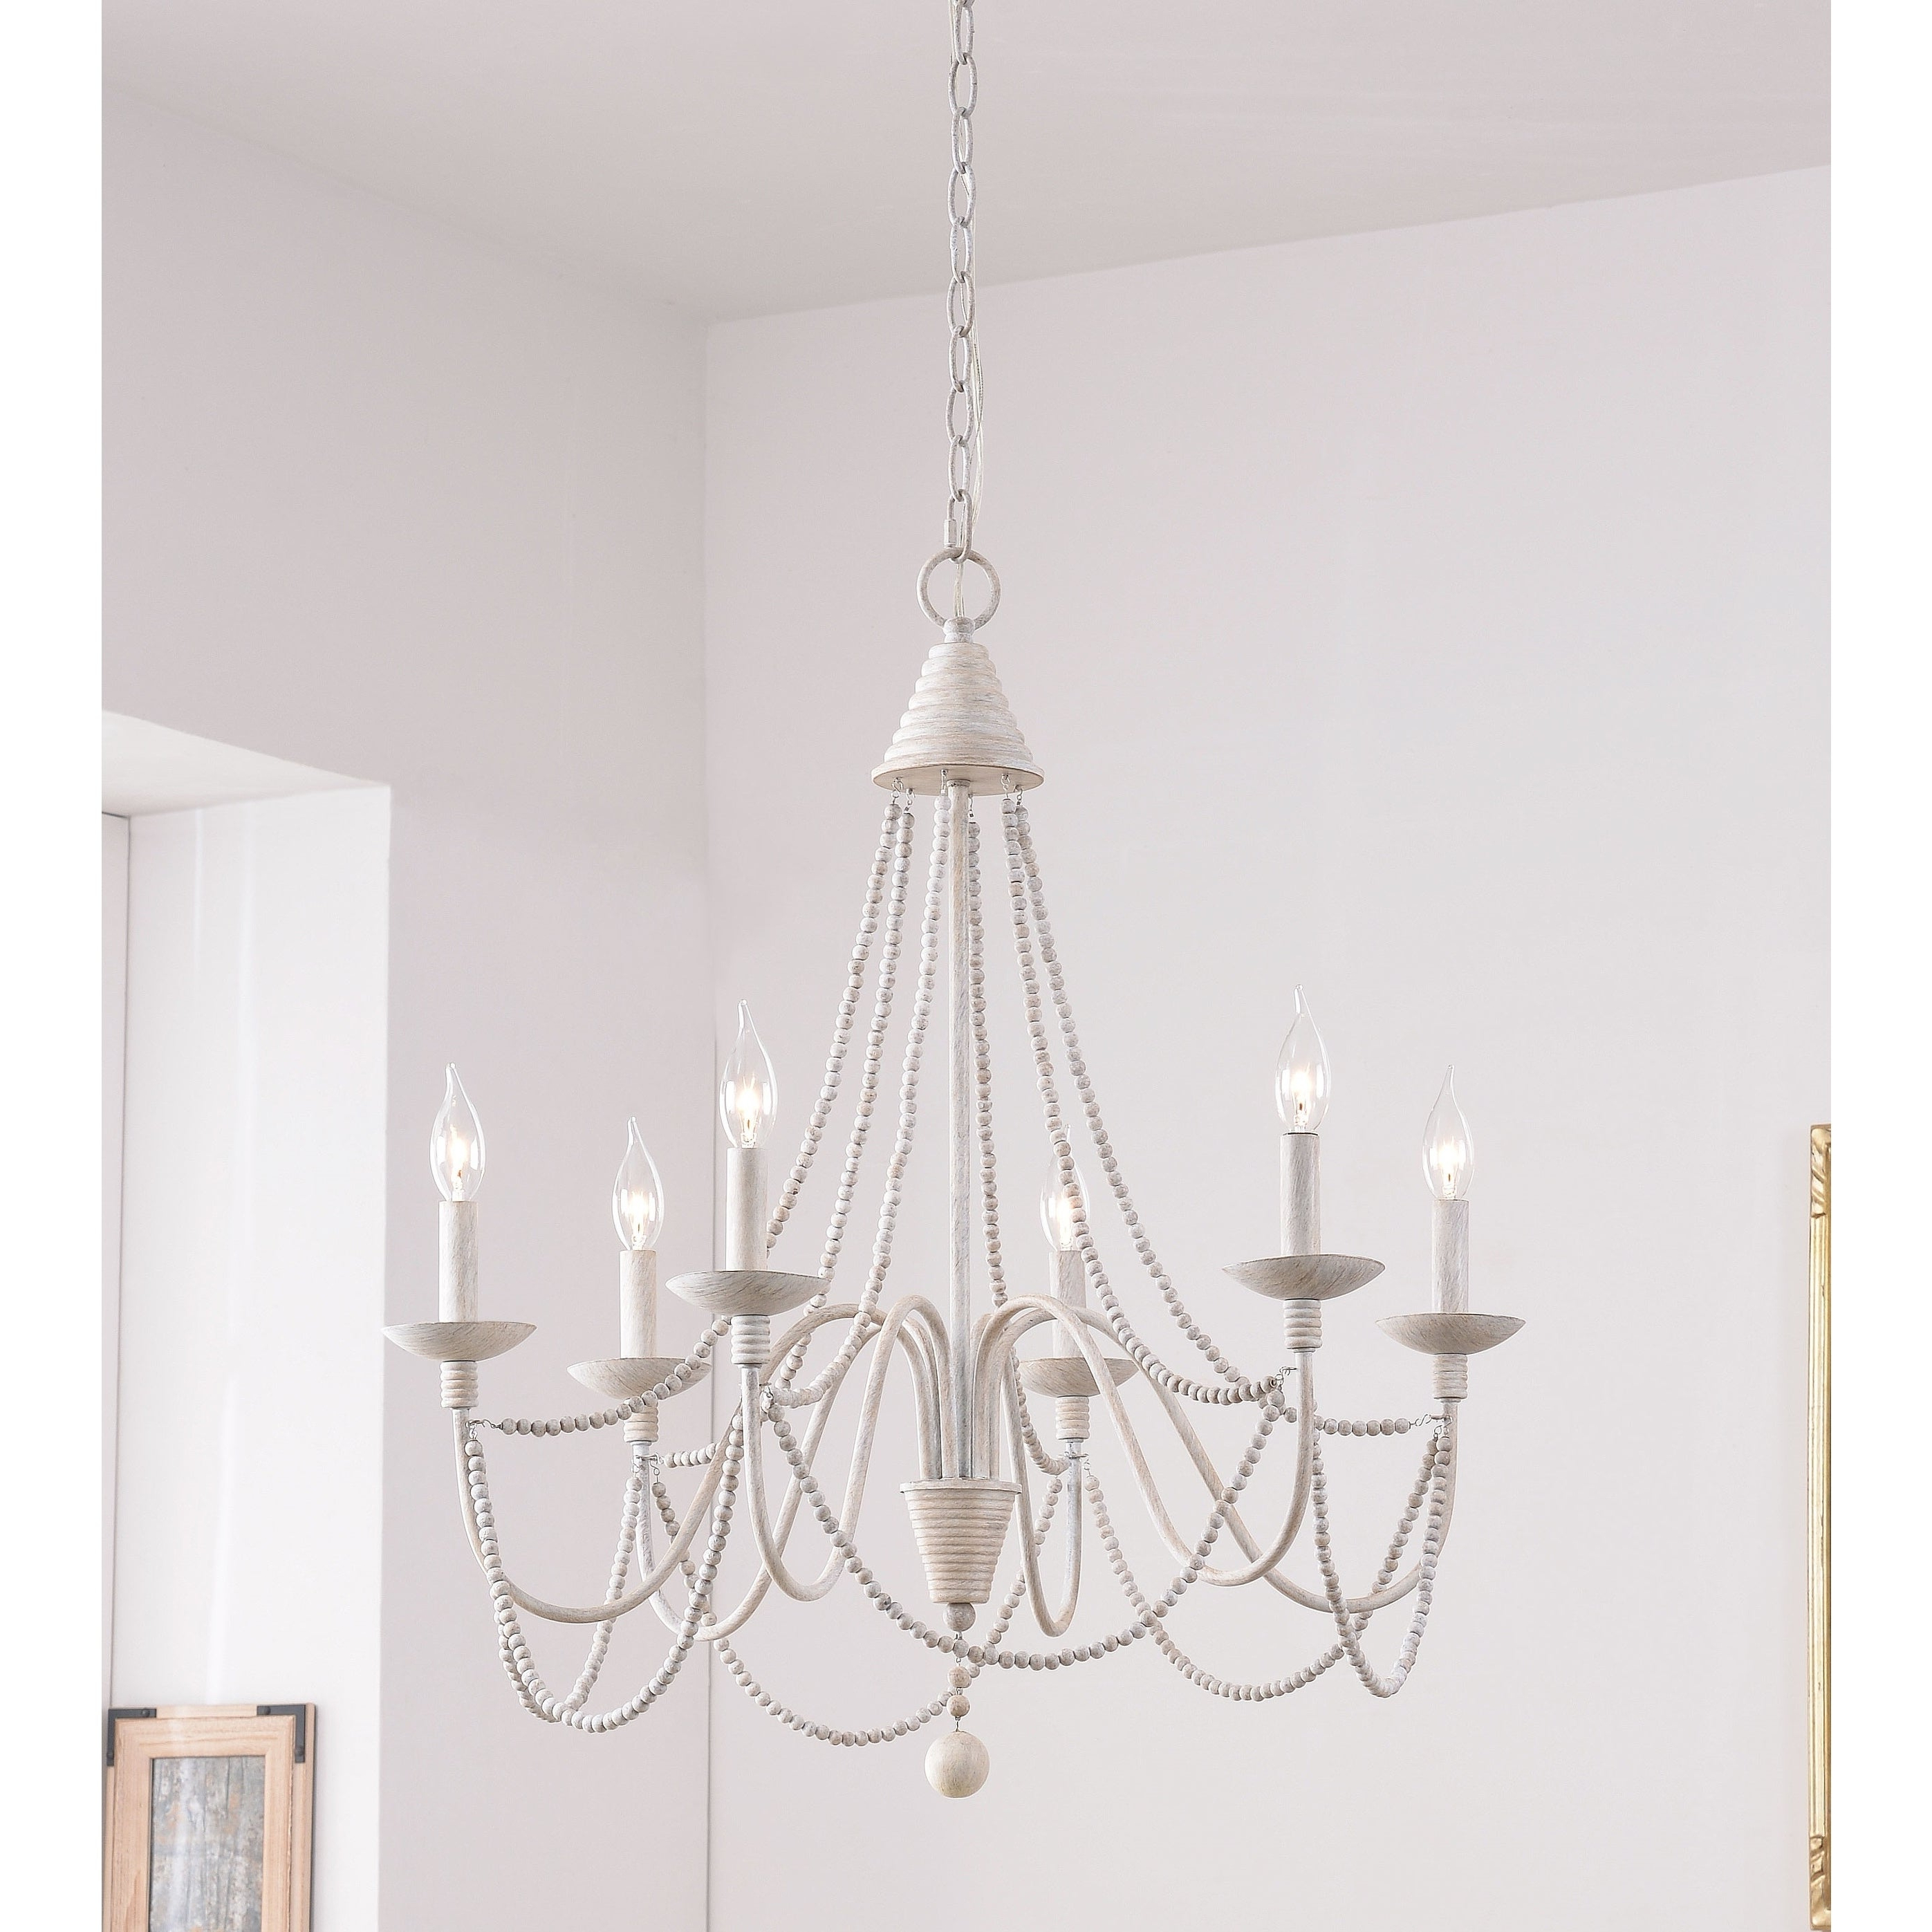 Shop Our Best Lighting Intended For Camilla 9 Light Candle Style Chandeliers (View 21 of 25)